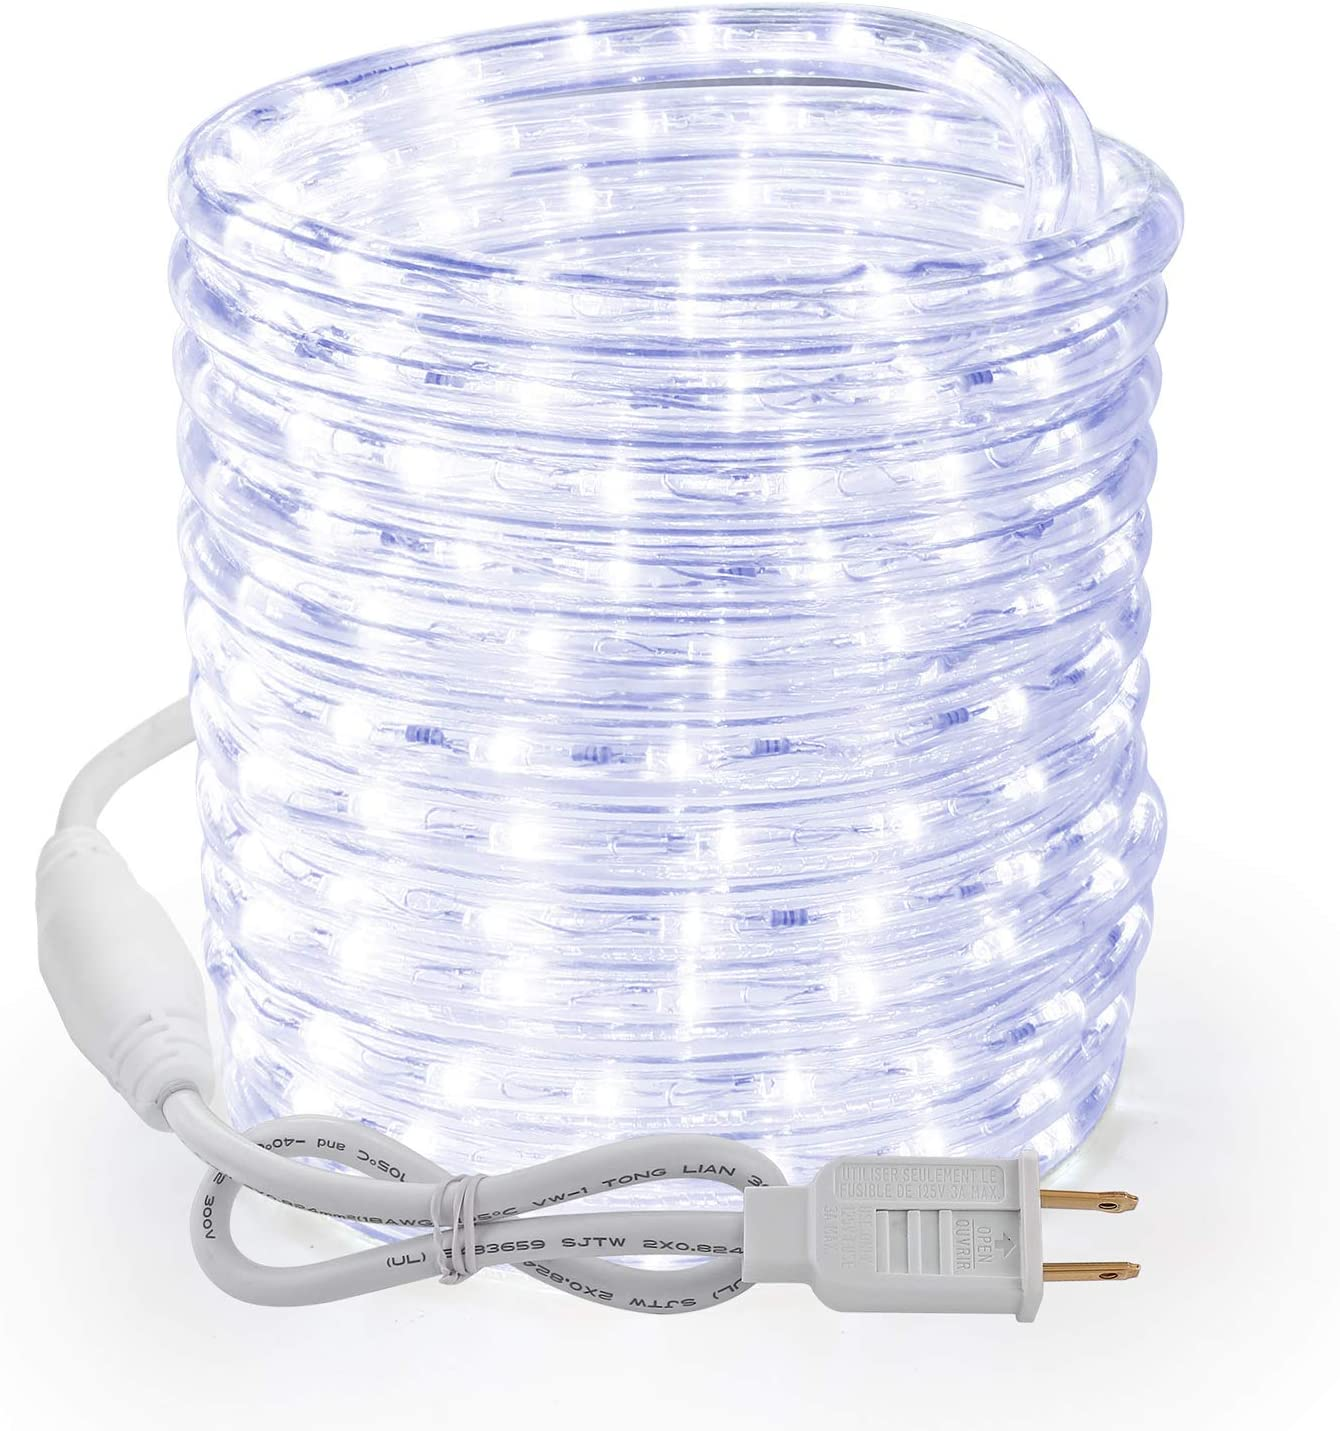 Brizled Rope Lights 51ft 612 Plugin Chris 120V Animer and price revision Max 89% OFF LED